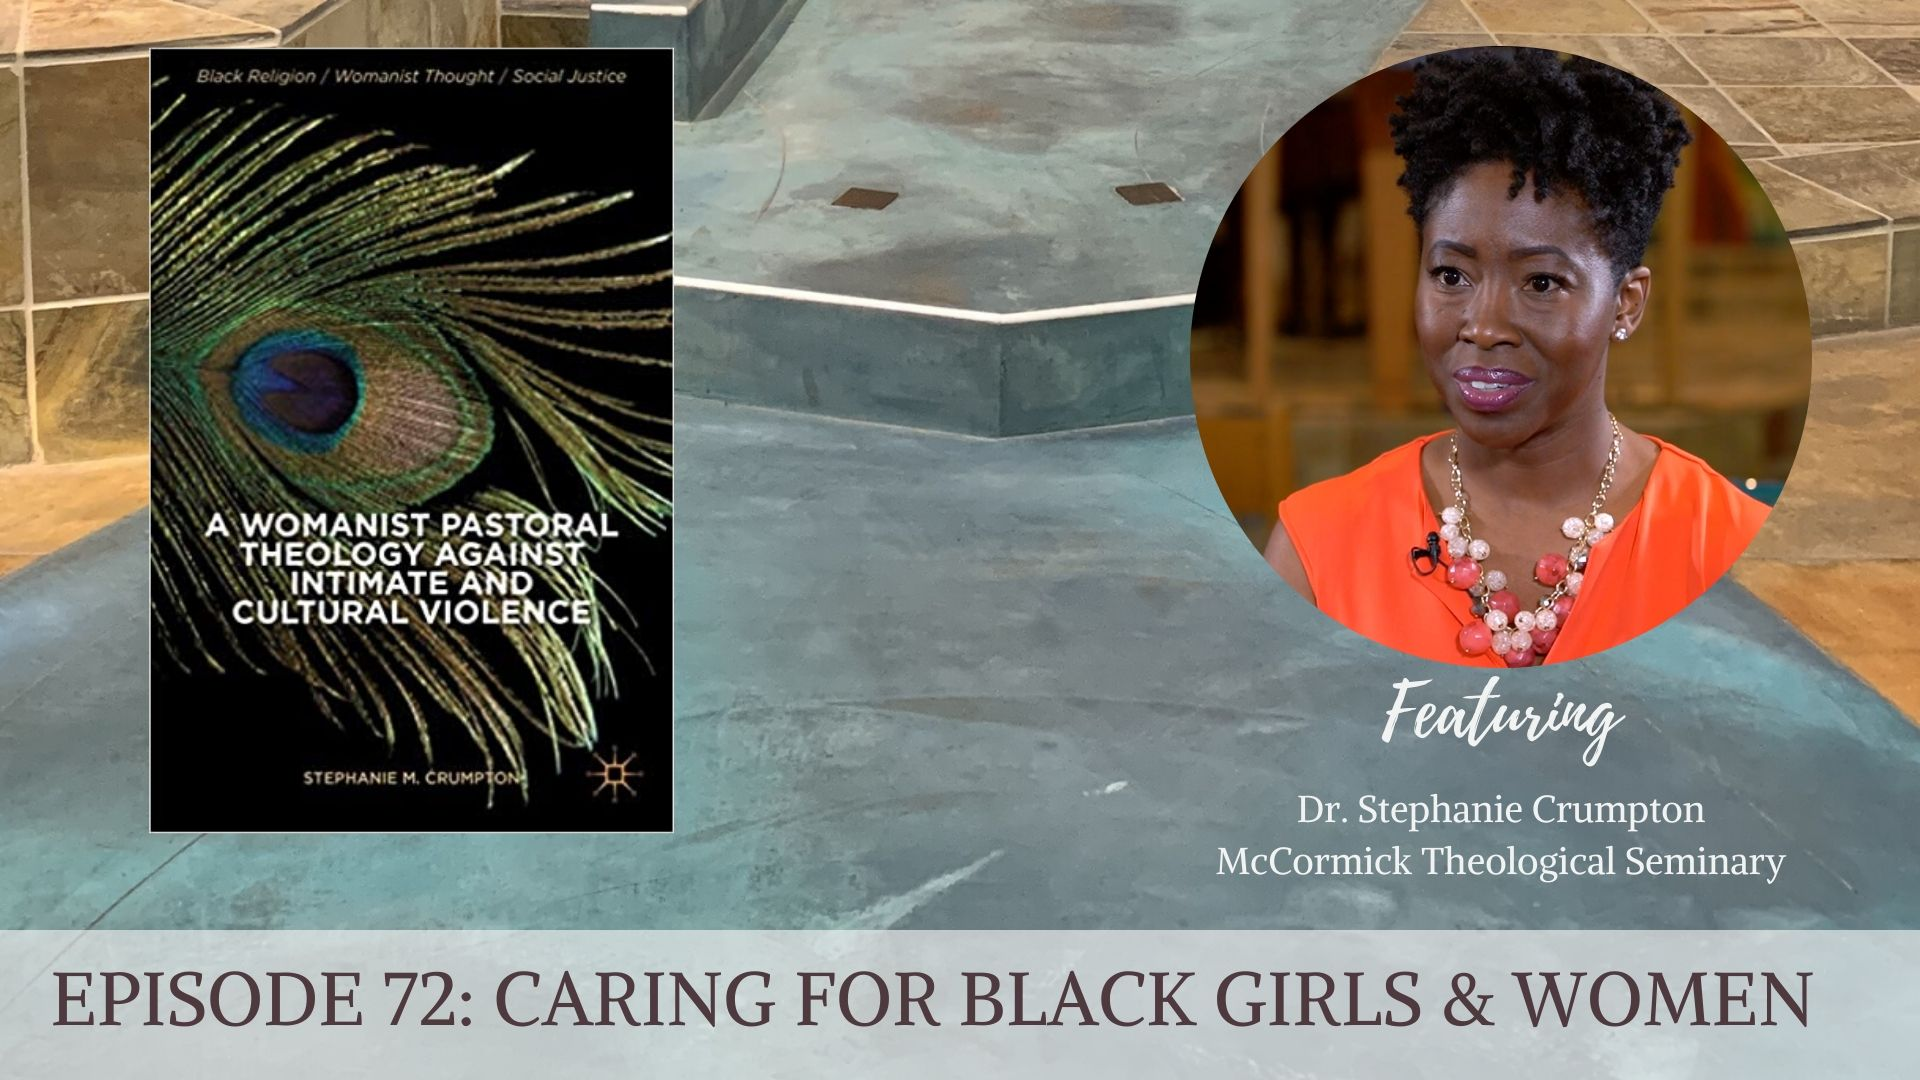 Dr. Stephanie Crumpton + book cover